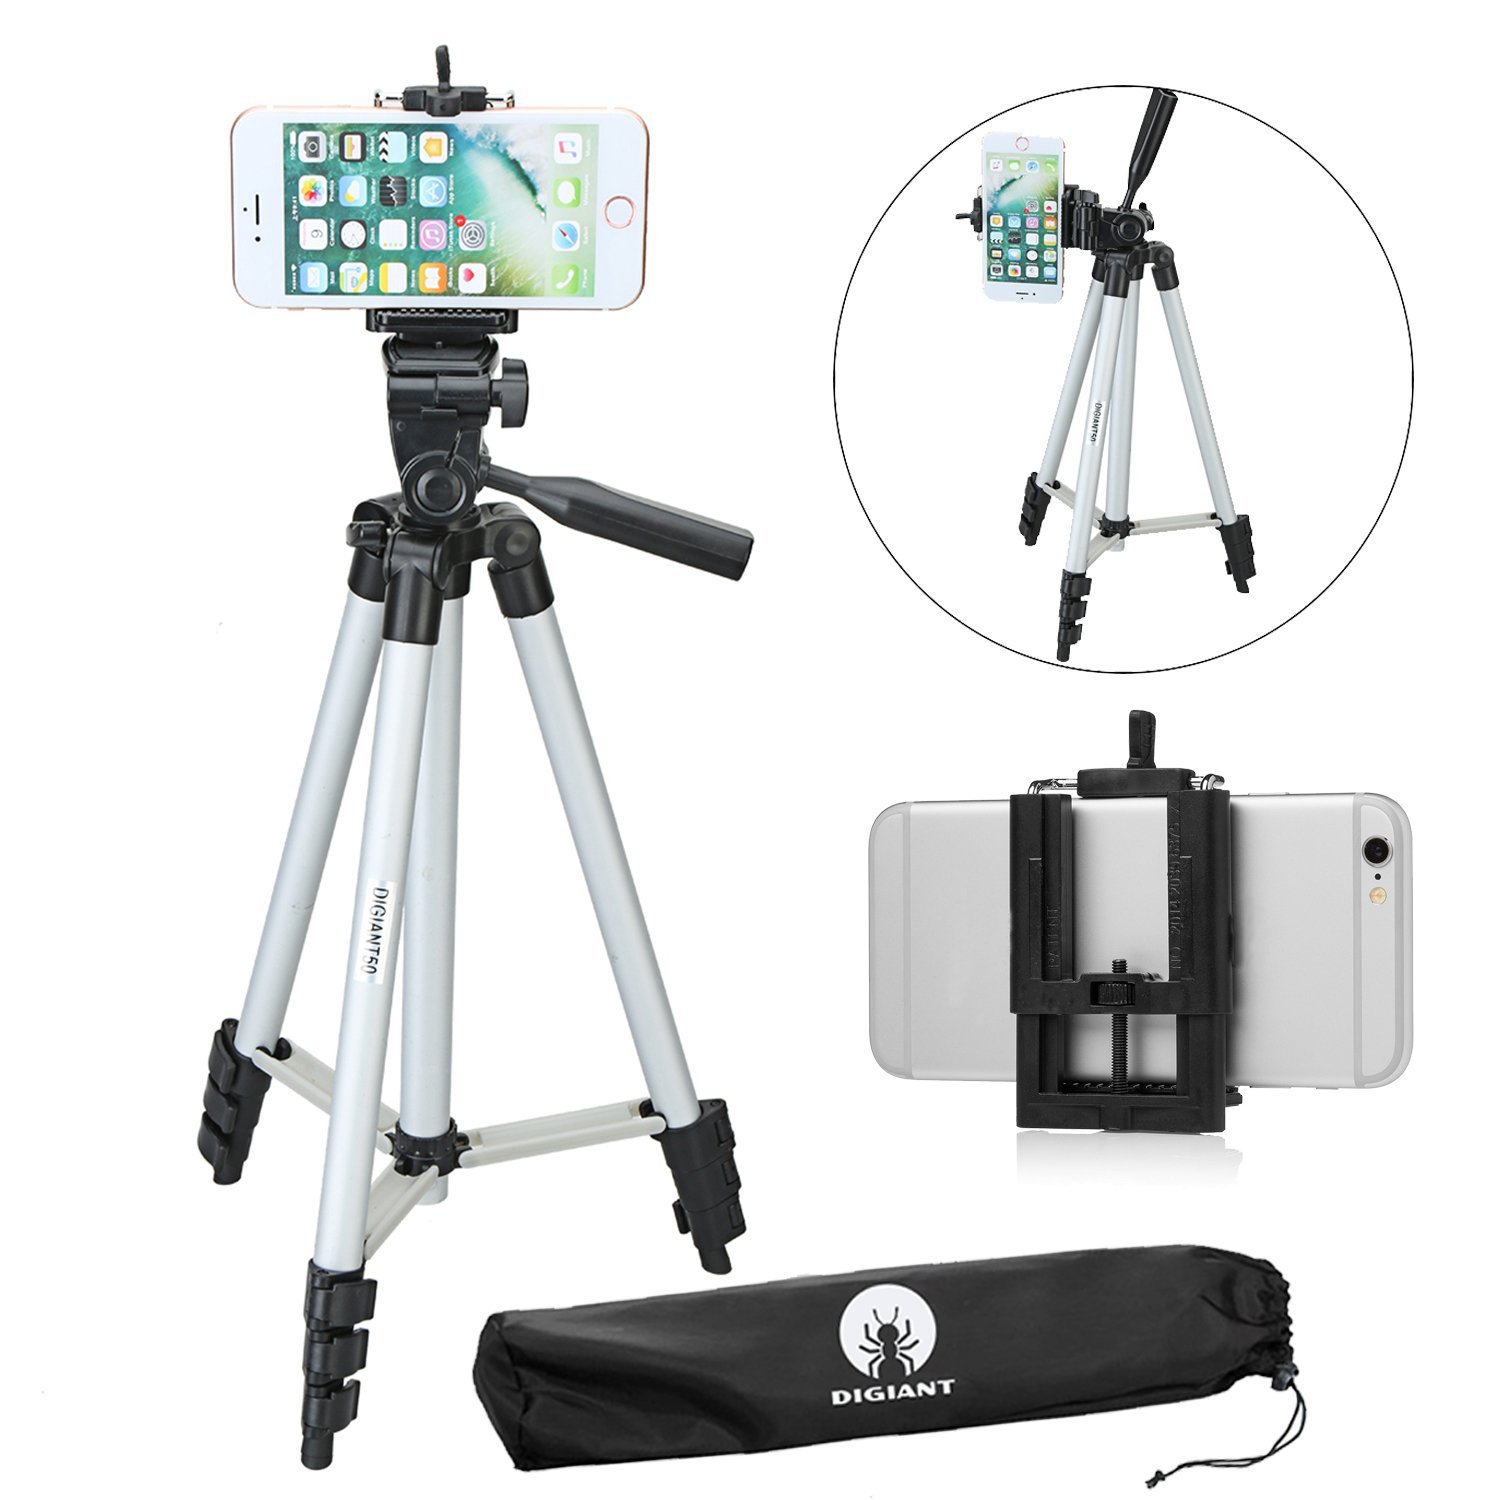 DIGIANT 50 Inch Aluminum Camera Phone Tripod+ Universal Tripod Smartphone Mount for Apple, iPhone Samsung and Other Brands Smartphones+Carrying Bag by DIGIANT